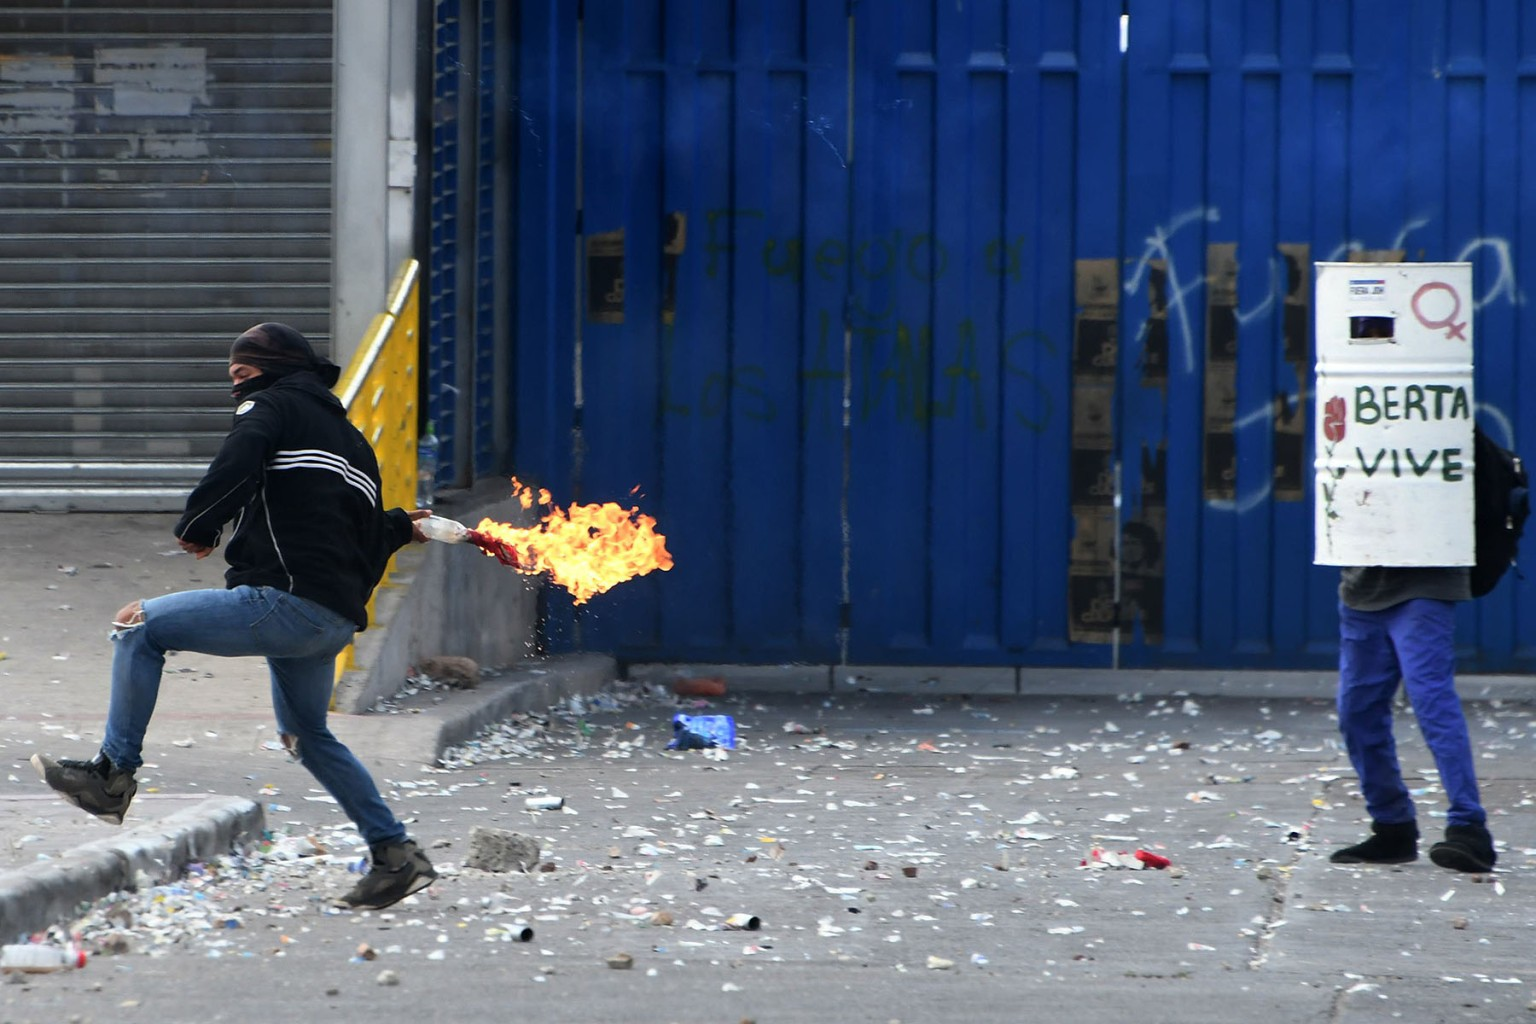 A student throws a Molotov cocktail during clashes with the riot police which erupted during a protest to demand punishment for the murder of Honduran indigenous leader and environmentalist Berta Caceres in Tegucigalpa on March 4. ORLANDO SIERRA/AFP/Getty Images